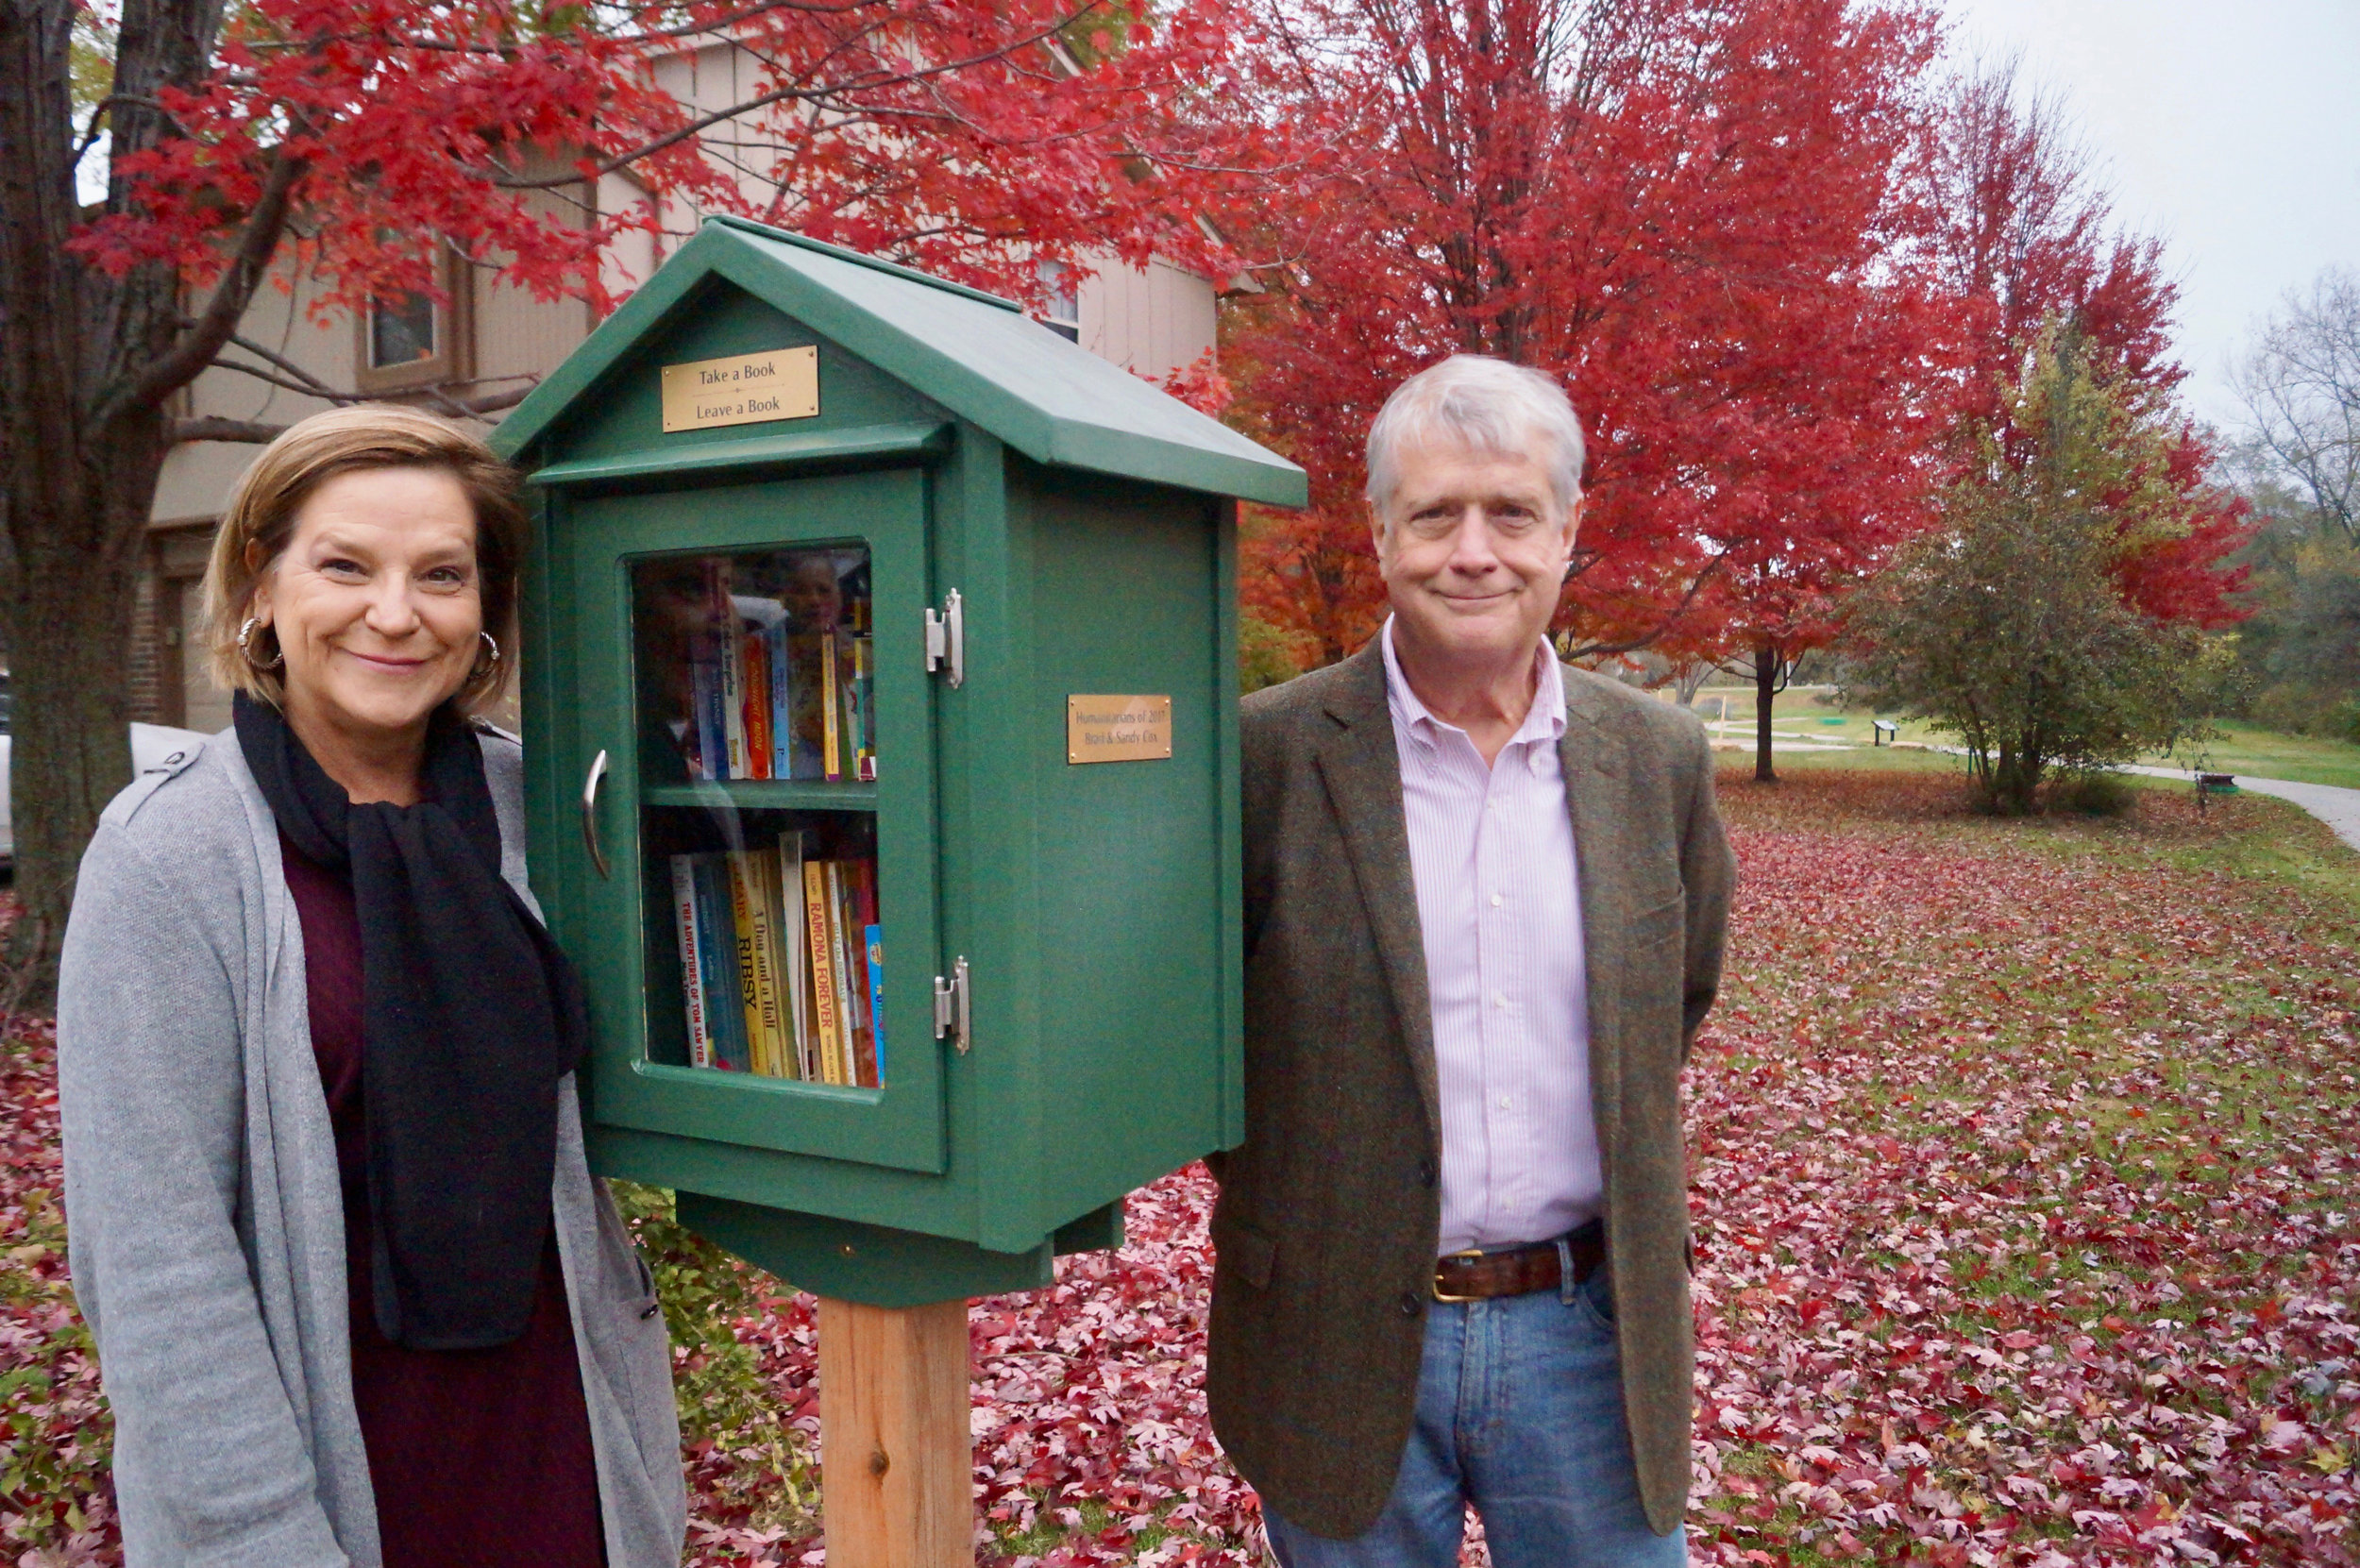 Courtesy Amy Valmassei  | Sandy and Brad Cox helped the Lee's Summit Parks & Recreation department celebrate the opening of a new Little Free Library at Langsford Park.